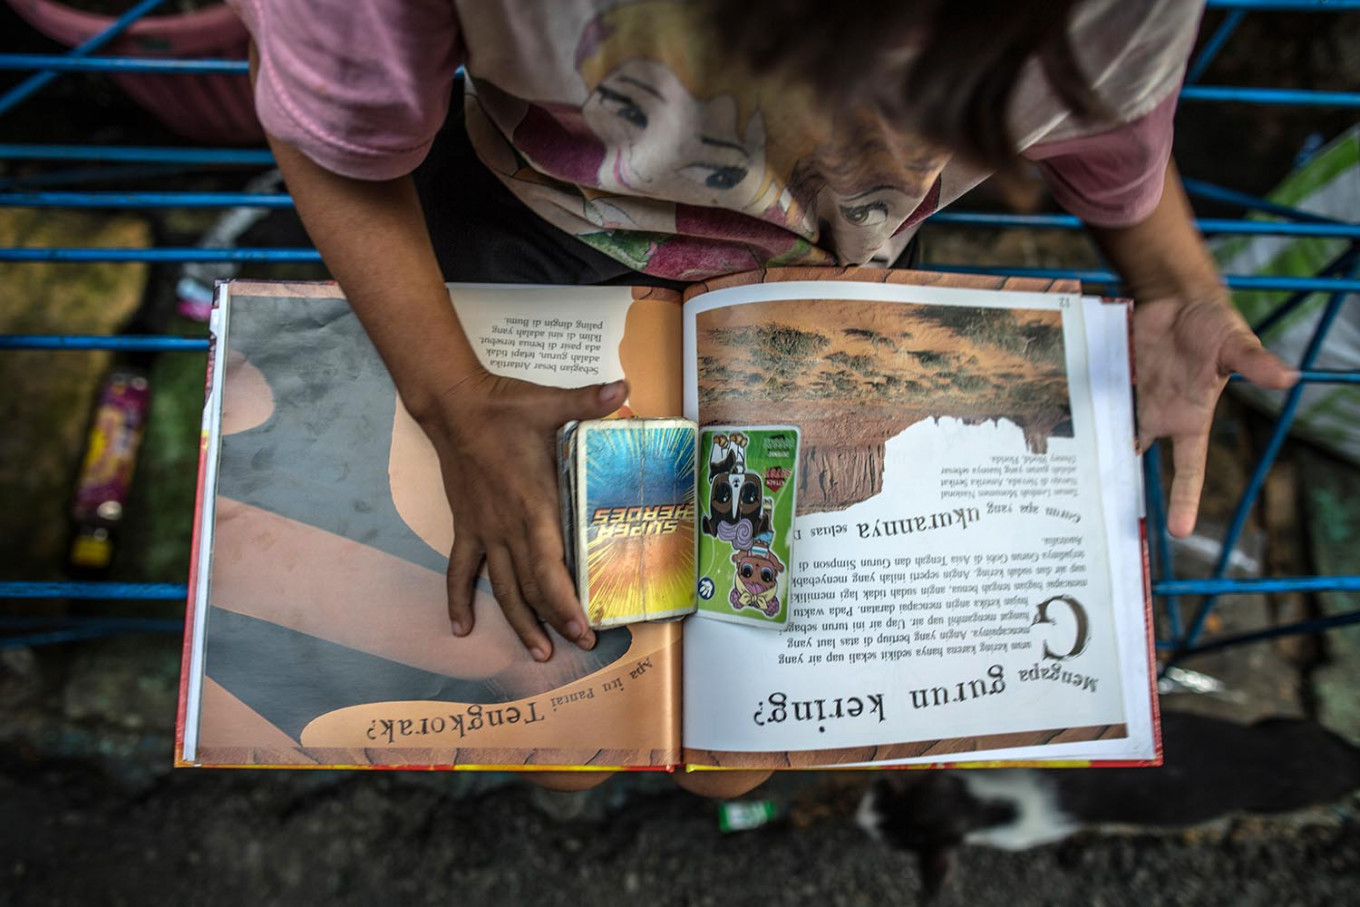 Aini flips through superhero character cards amid pages on desert geography in the Jatipulo literacy kampung. JP/Afriadi Hikmal